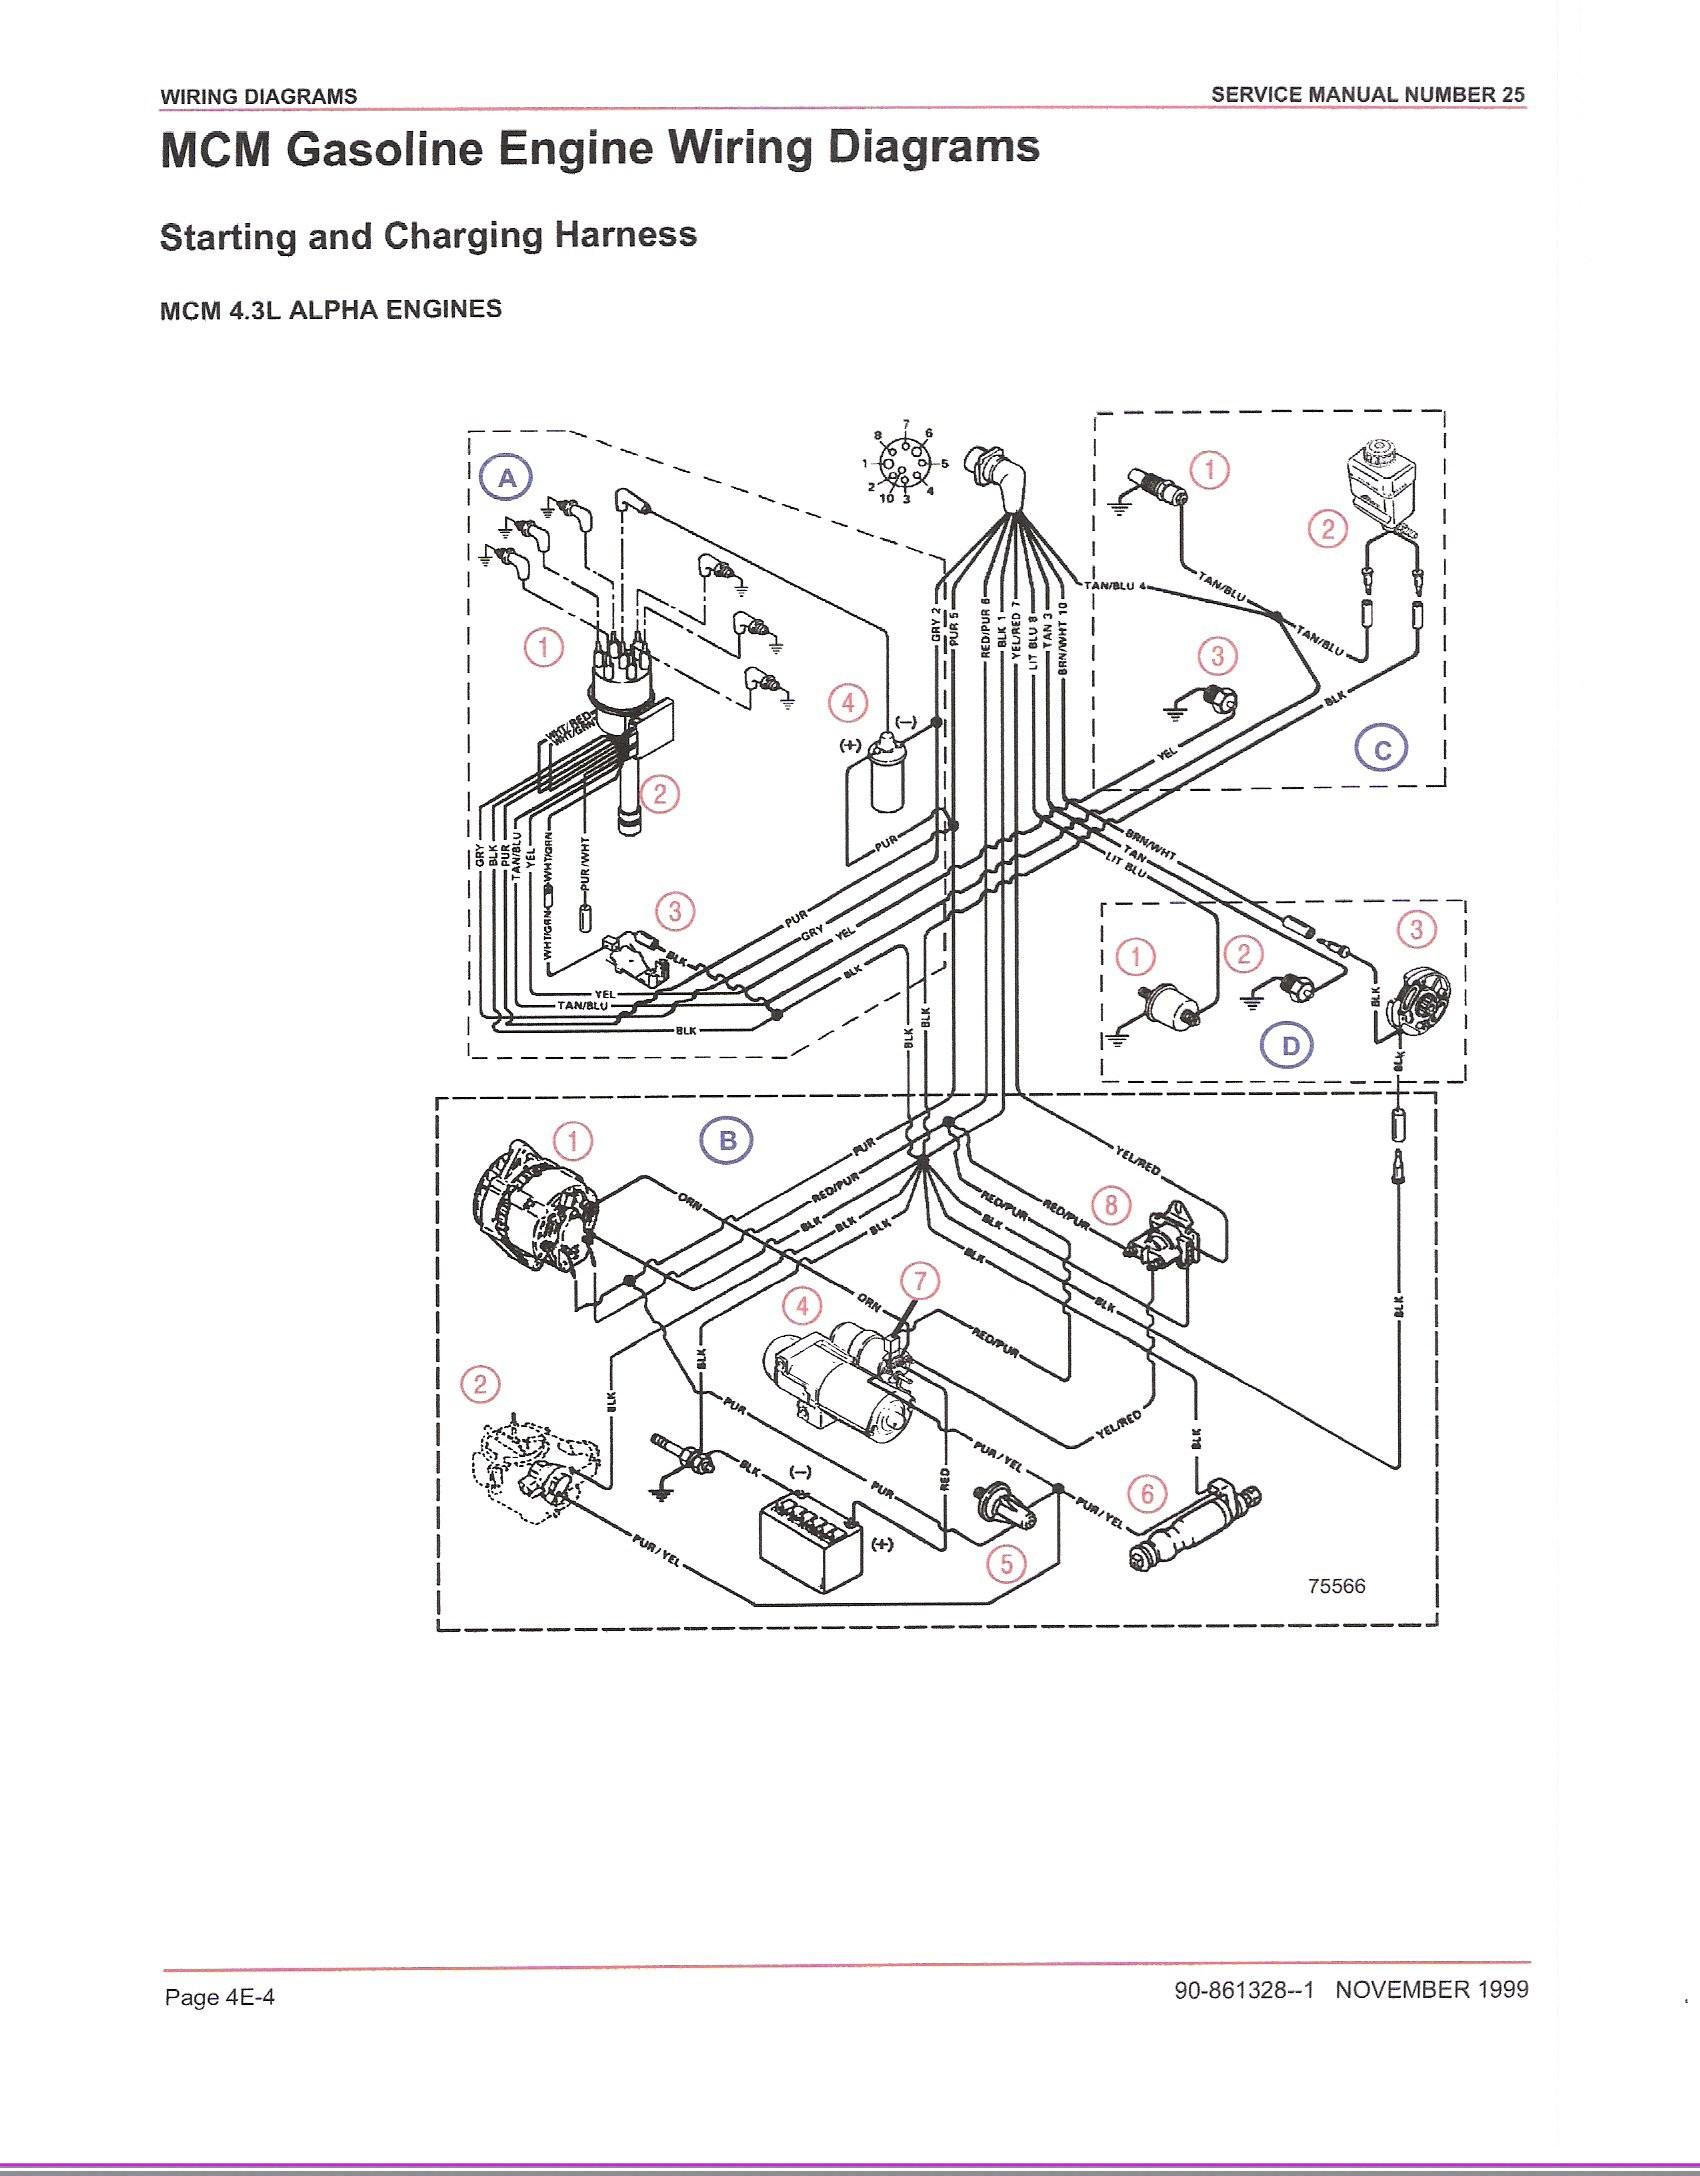 Volvo Penta 4 3 Engine Diagram Mercruiser 4 3 I O Loss Of Power when Throttling Up In Either Of Volvo Penta 4 3 Engine Diagram